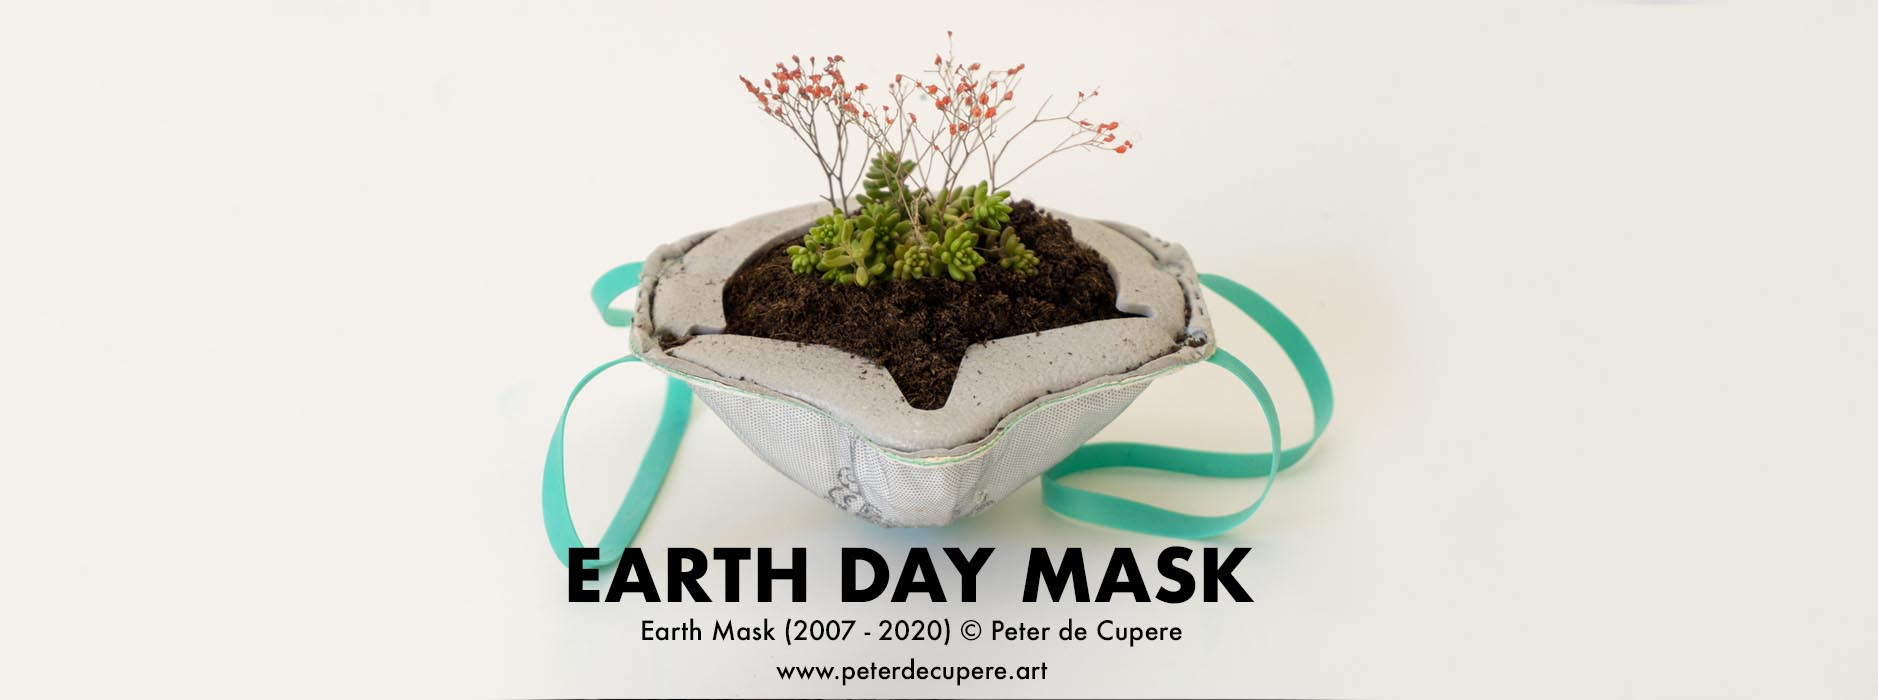 FB-earth-day-mask-Copyrights-Peter-de-Cupere-2007-2020-A001